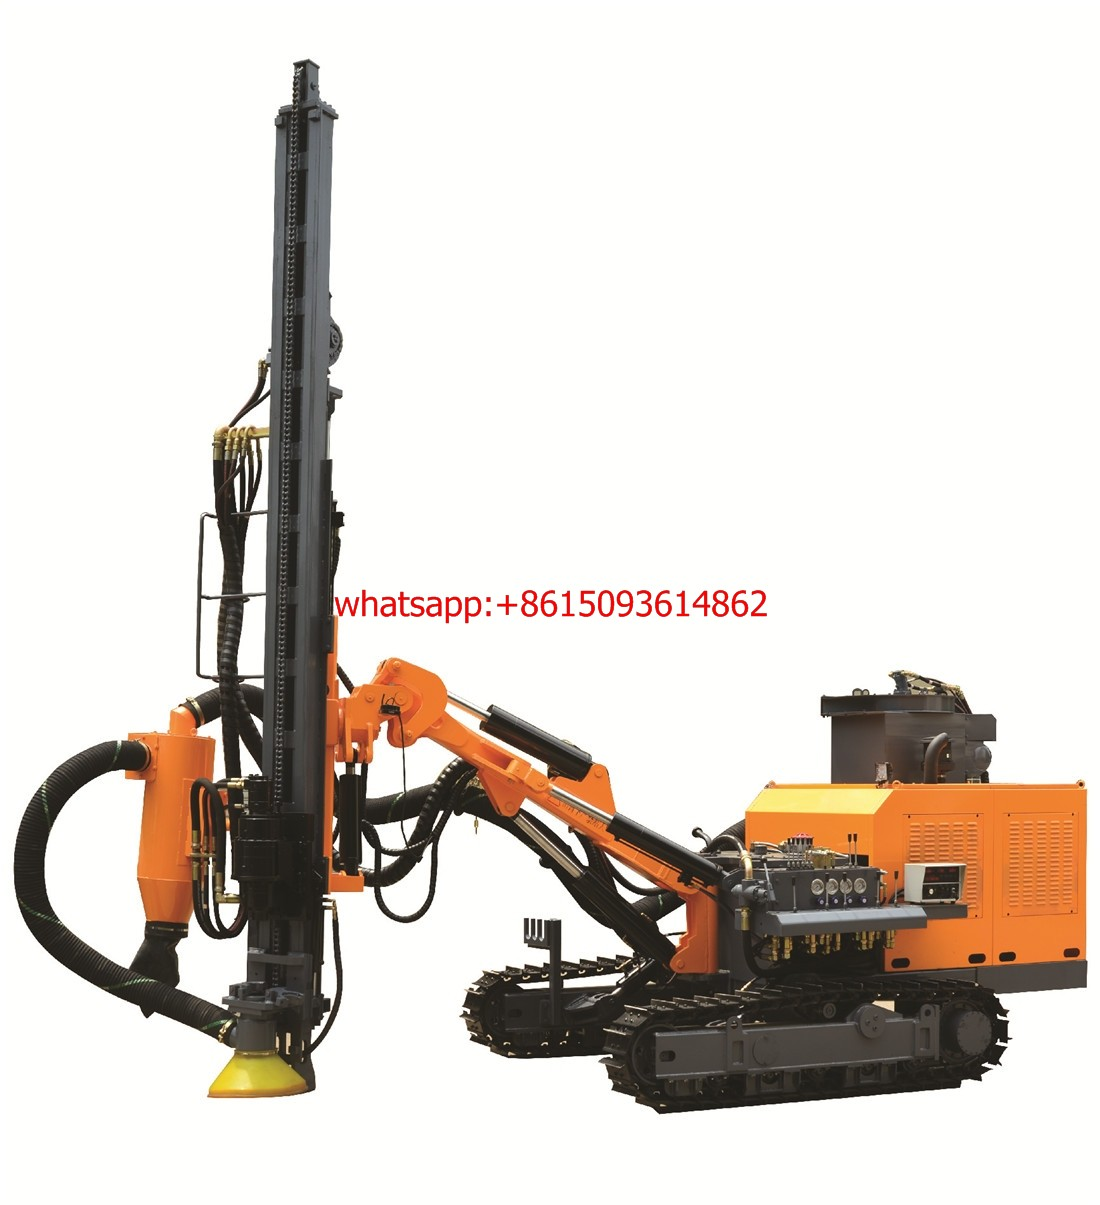 KG520/KG520H DTH drill rig